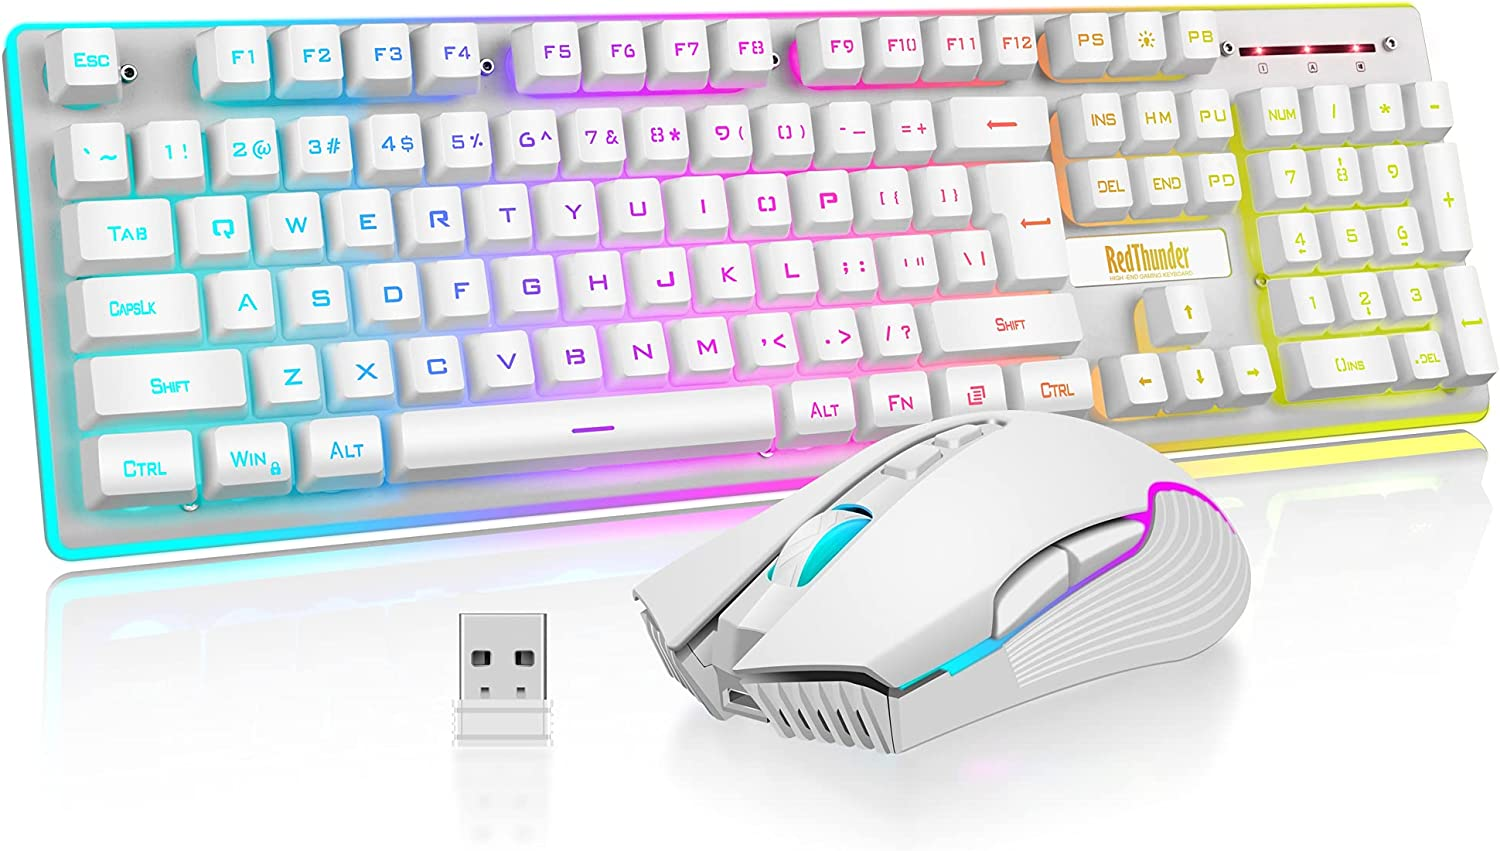 RedThunder K10 Wireless Gaming Keyboard and Mouse Combo, LED Backlit Rechargeable 3800mAh Battery, Mechanical Feel Anti-ghosting Keyboard + 7D 3200DPI Mice for PC Gamer (White)